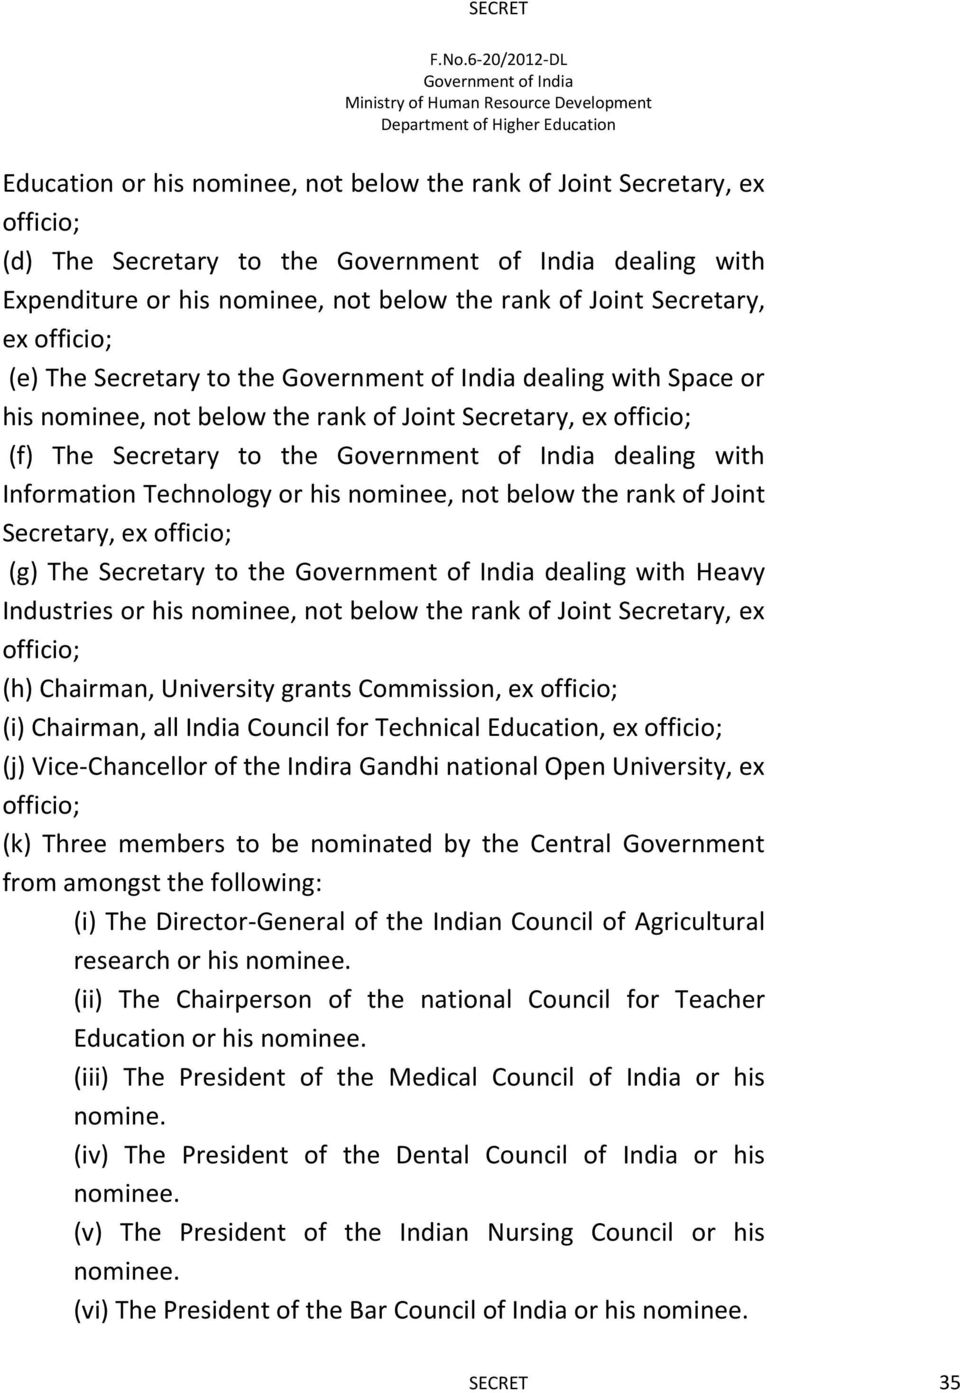 rank of Joint Secretary, ex officio; (g) The Secretary to the dealing with Heavy Industries or his nominee, not below the rank of Joint Secretary, ex officio; (h) Chairman, University grants